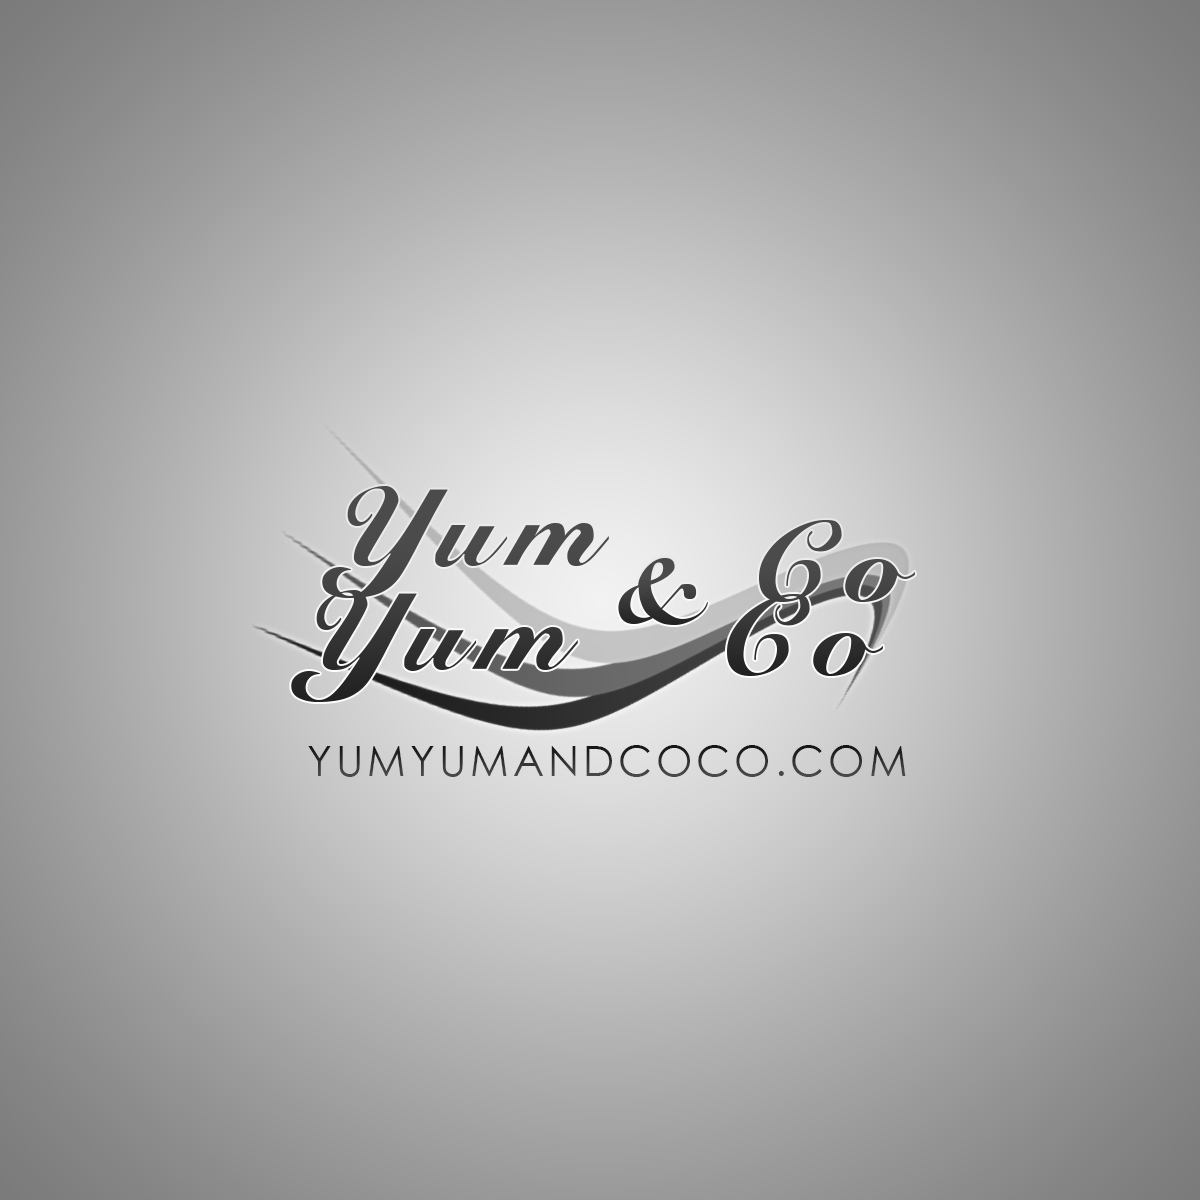 Logo Design by Viral Ramani - Entry No. 114 in the Logo Design Contest Logo Design for YumYum & CoCo.